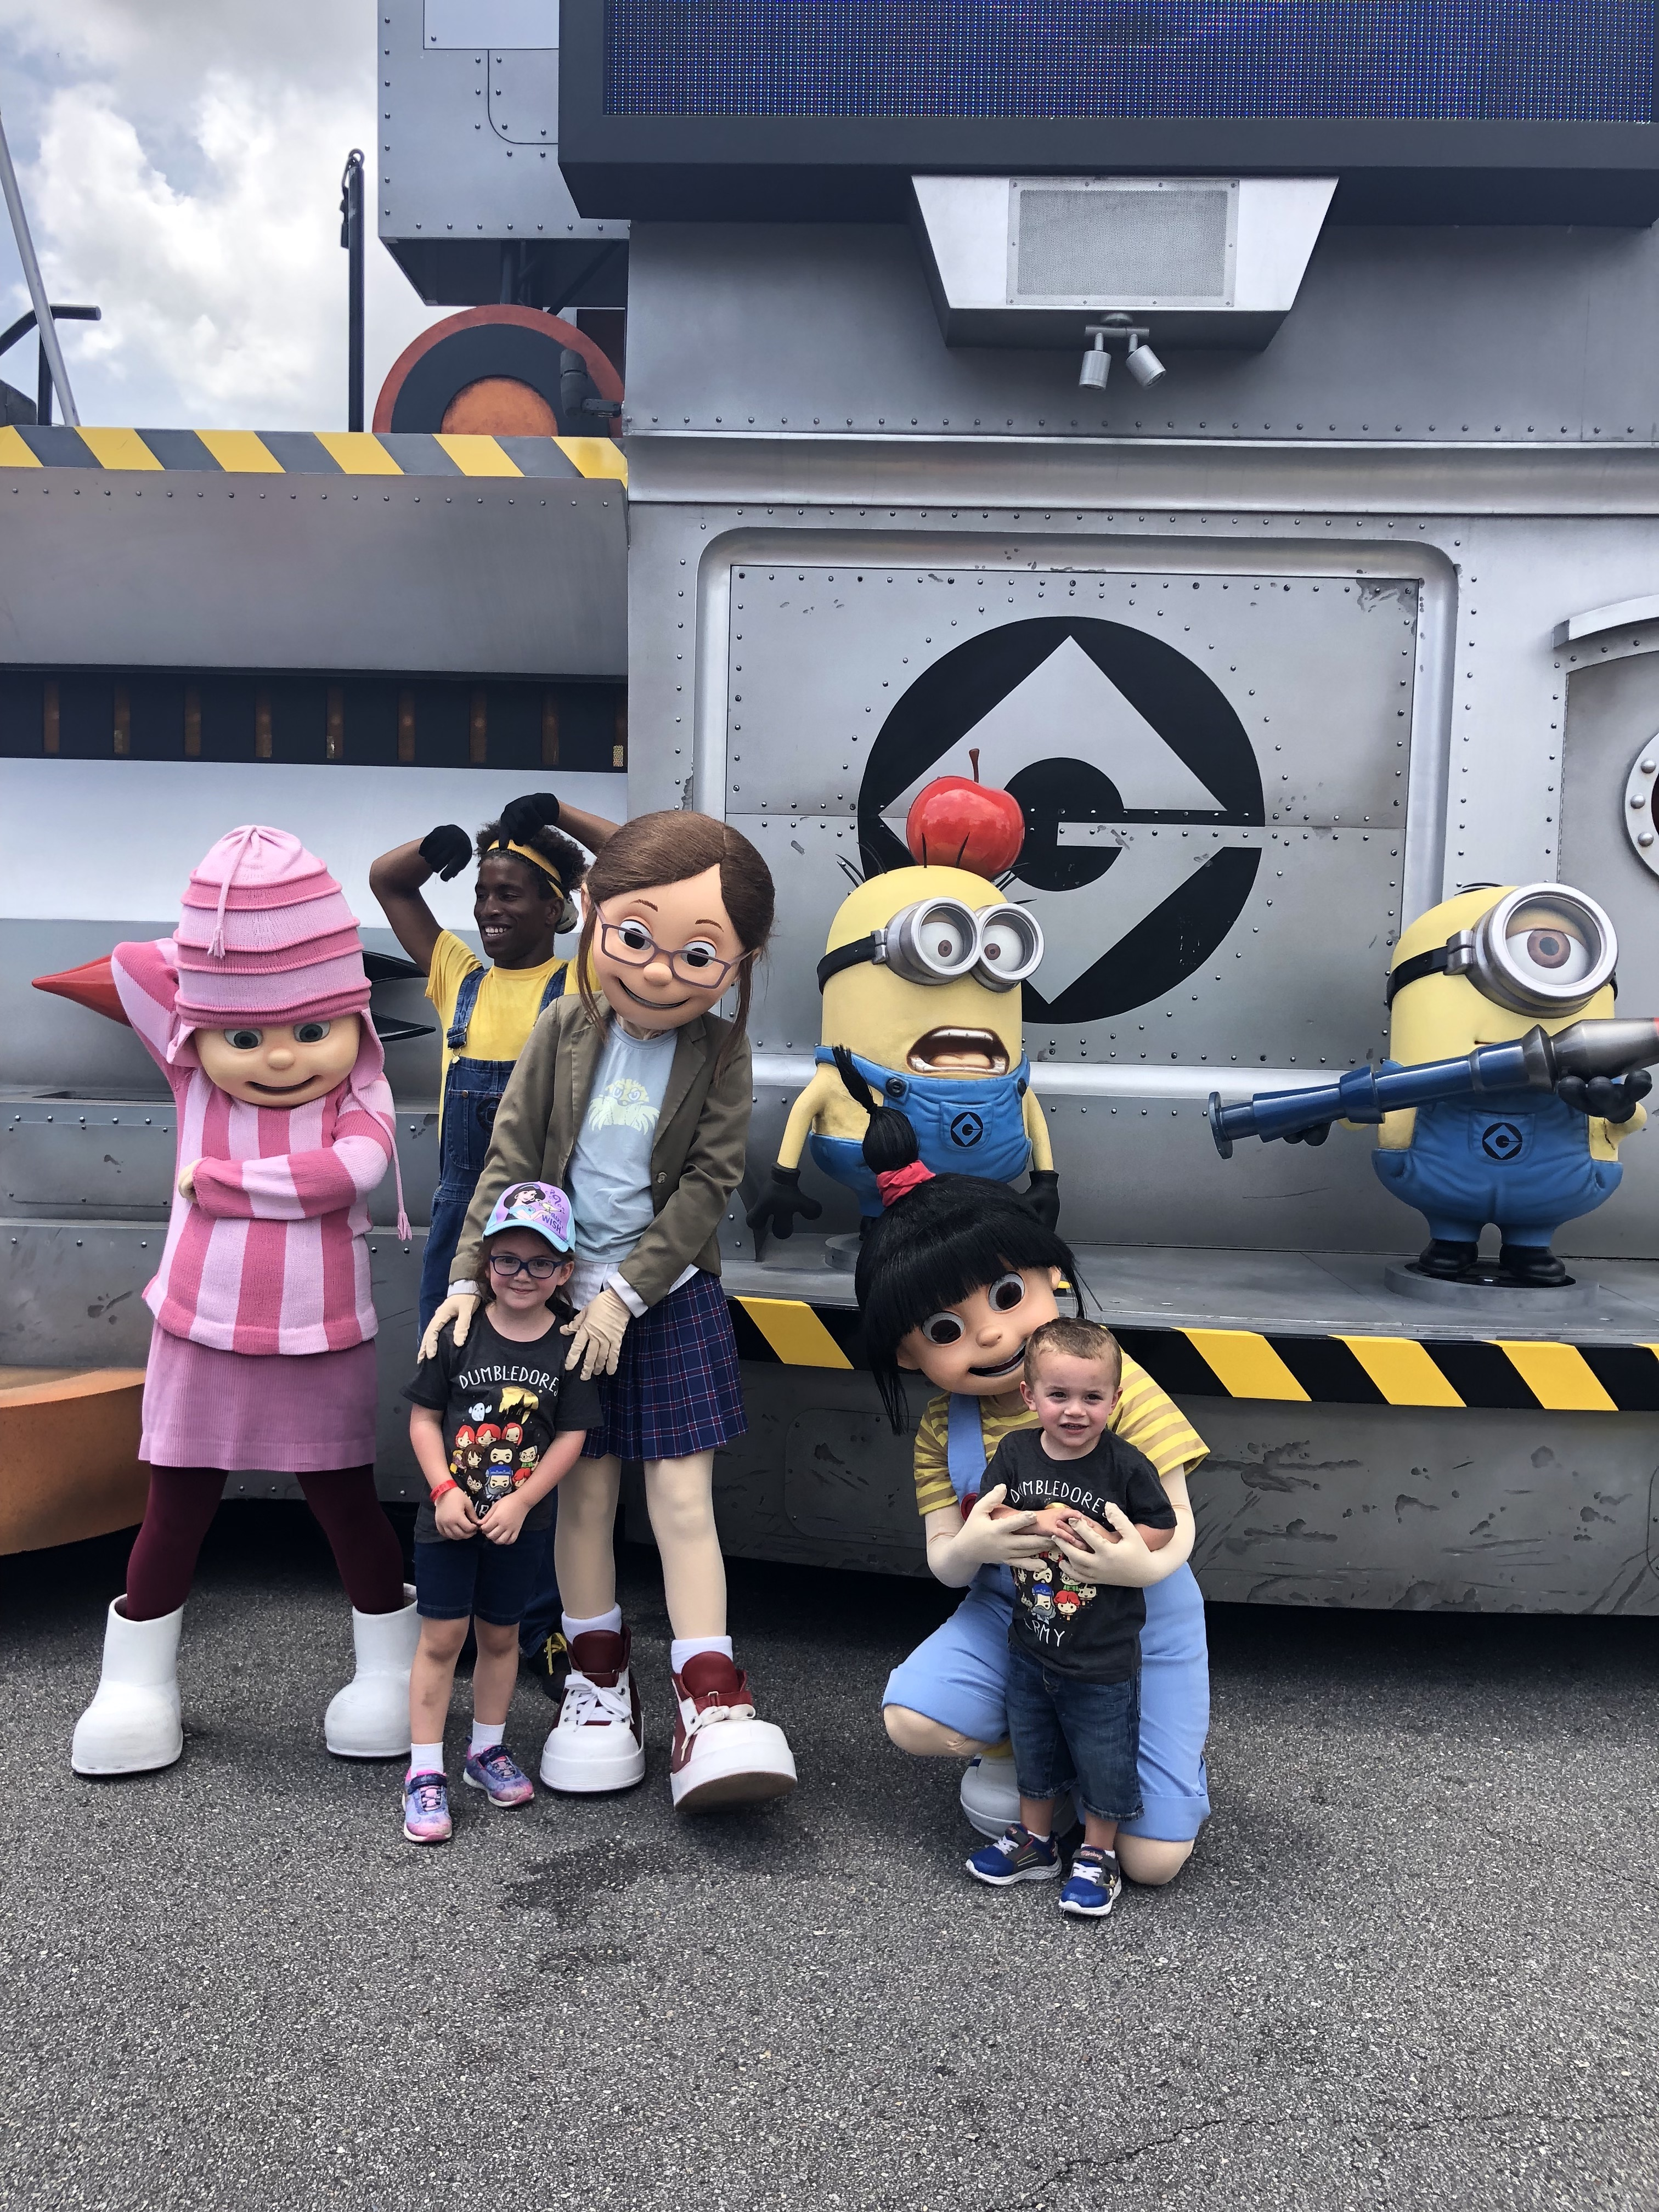 Visiting the Minions!